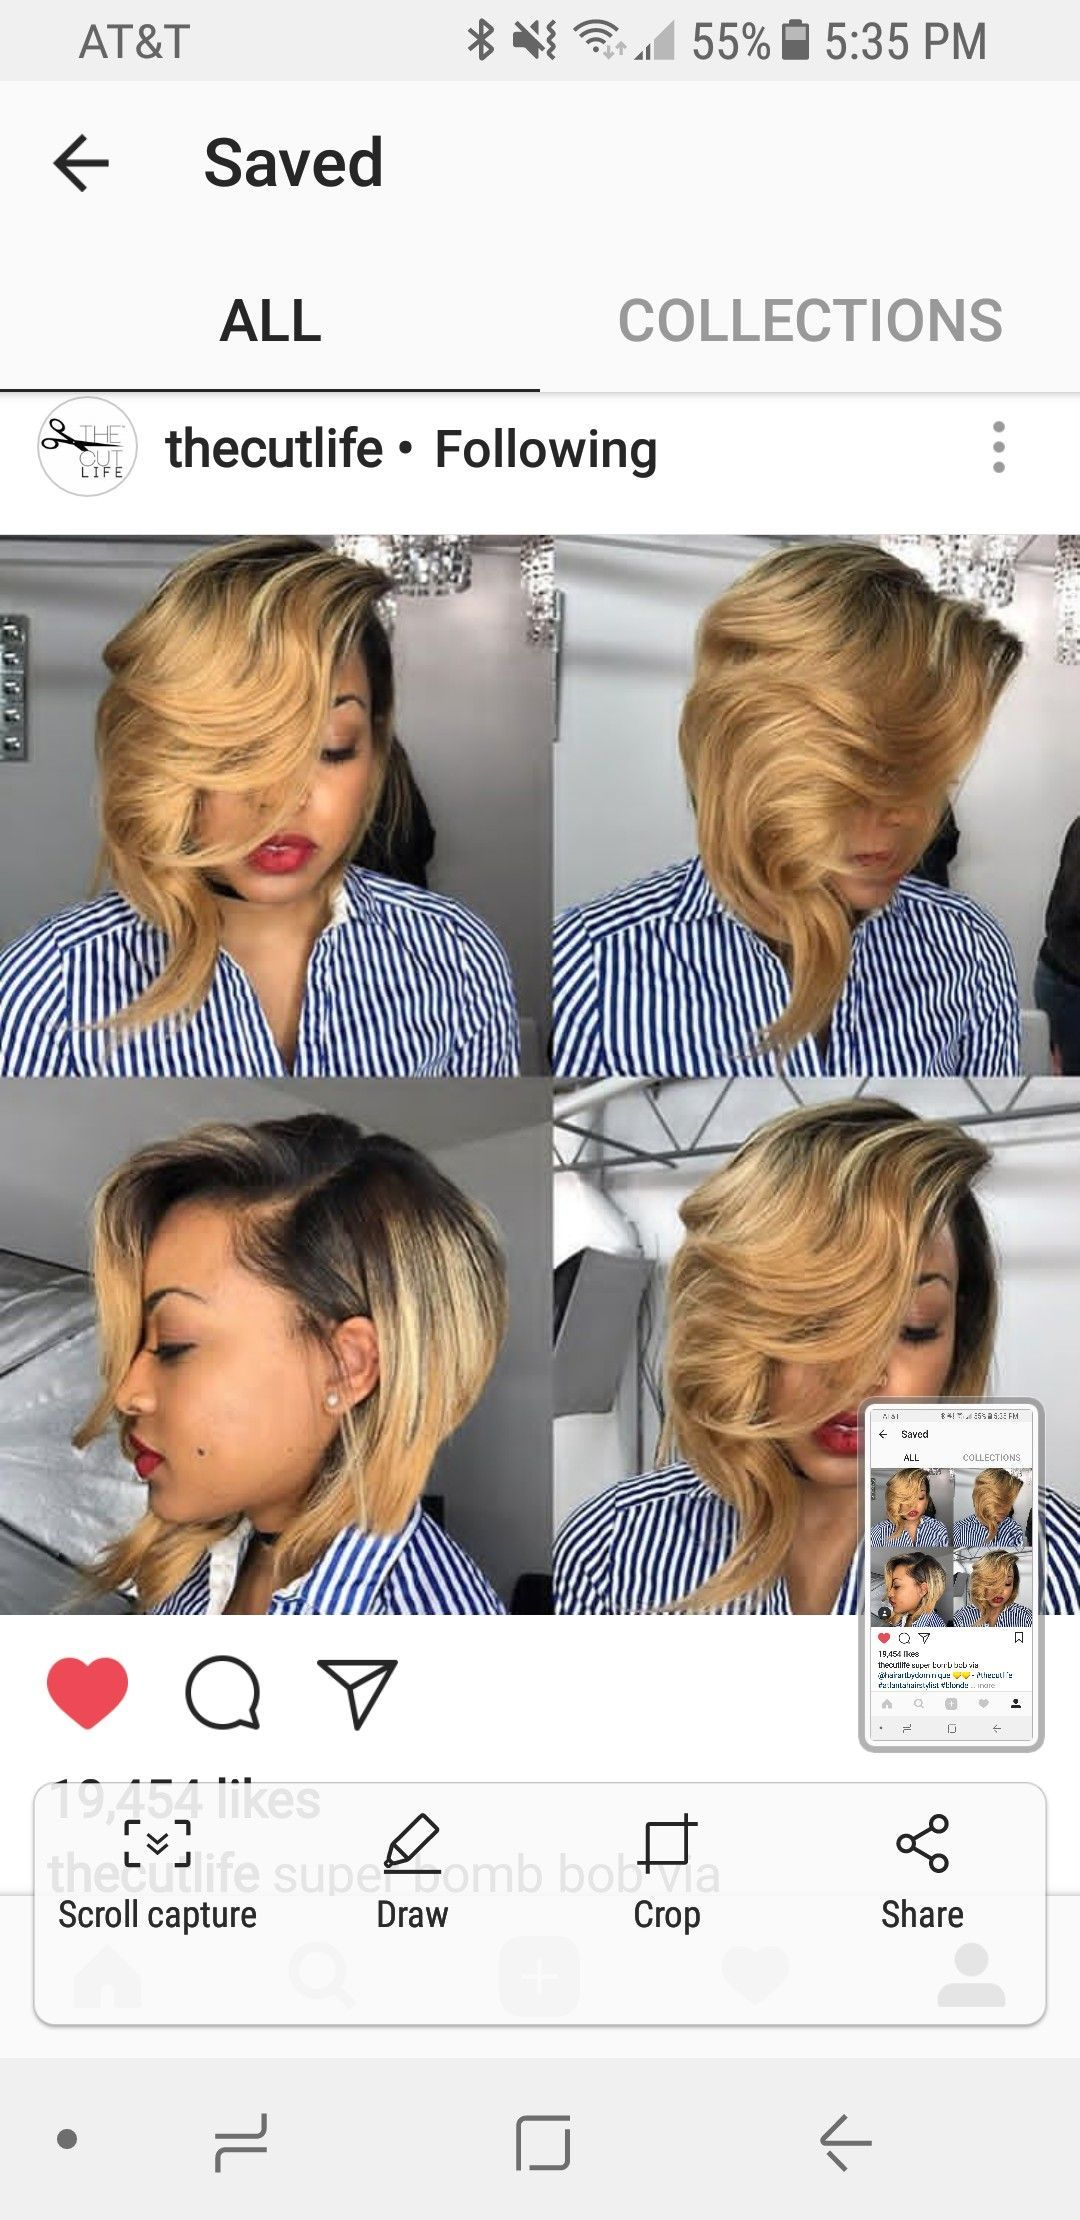 Pretty Blackhairstyles  Natural Glory  Pinterest  Hair styles